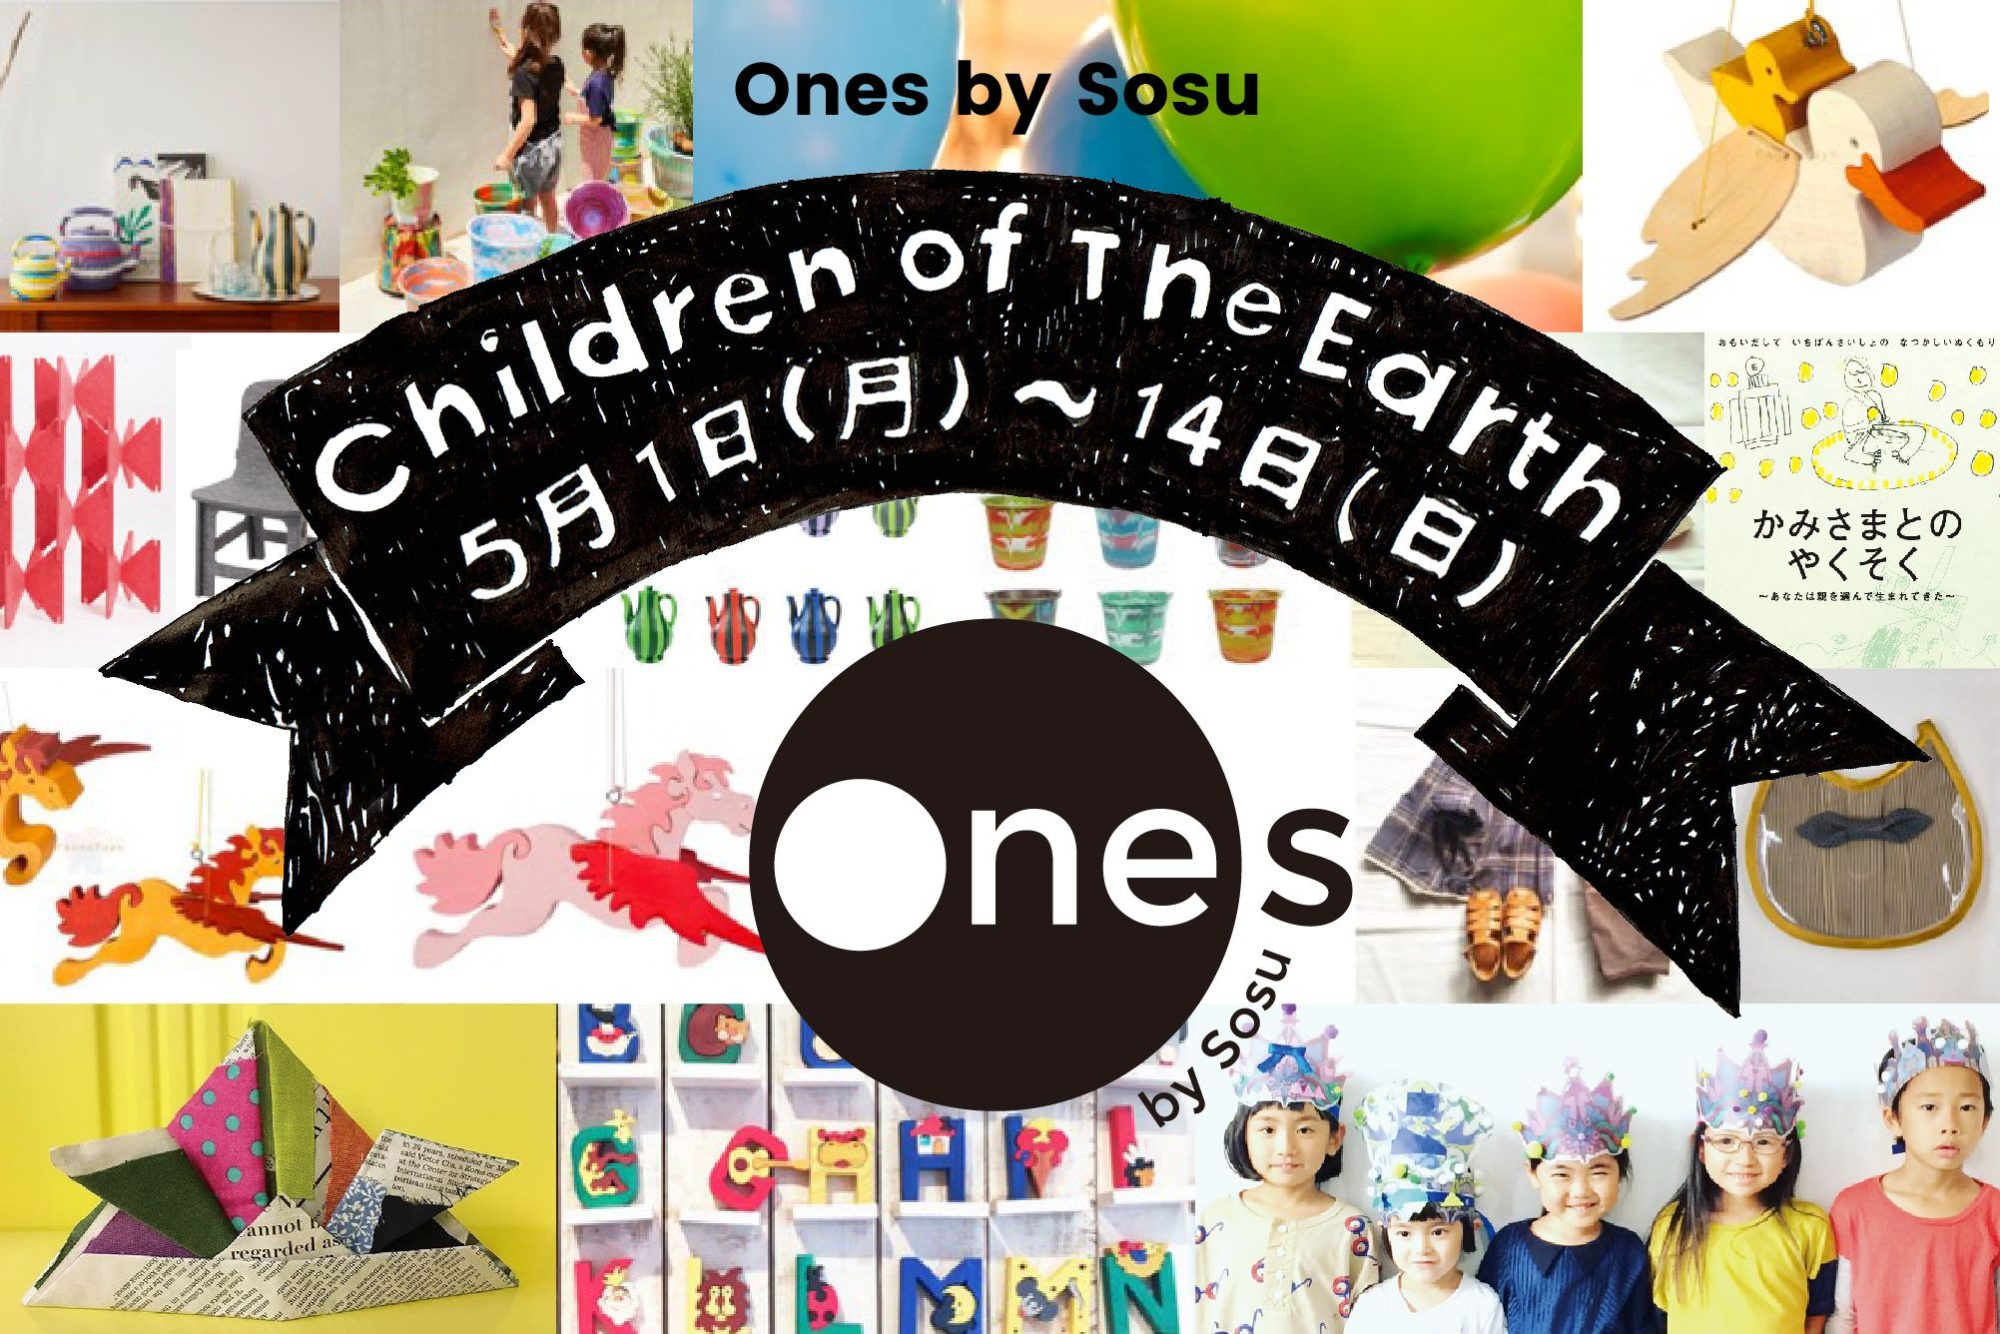 Ones by Sosu 「Children of The Earth」